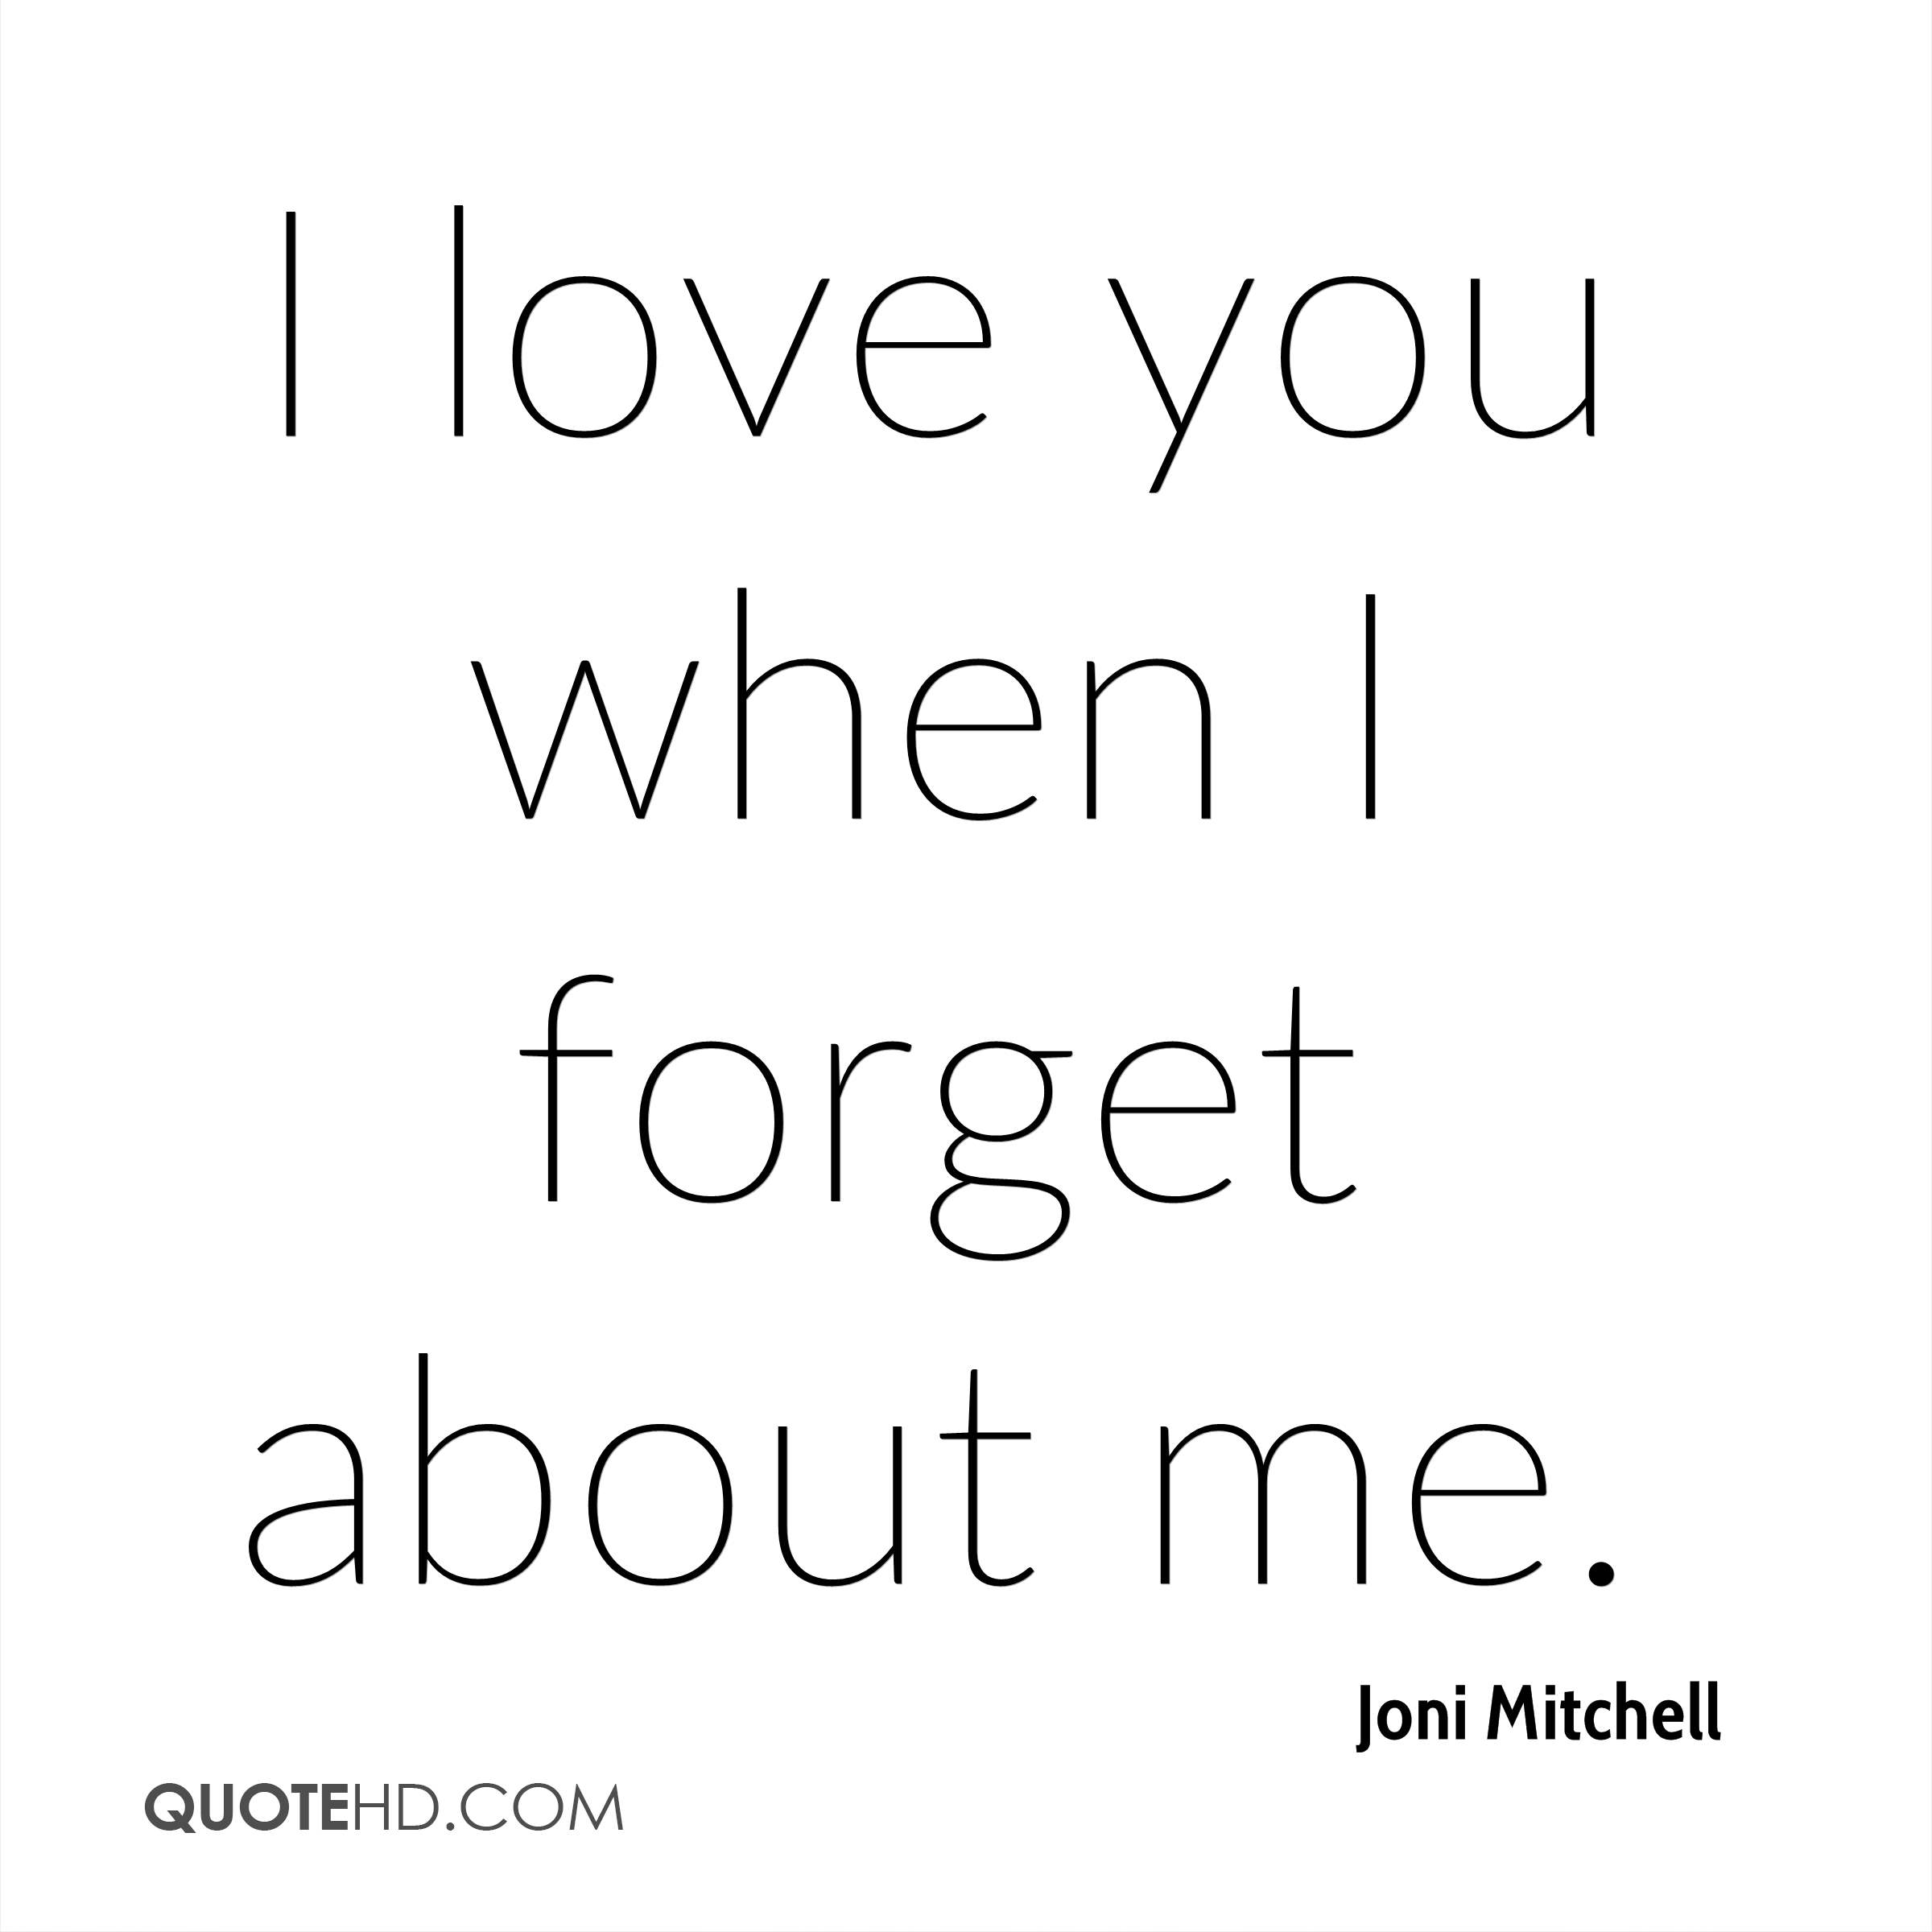 I love you when I forget about me.